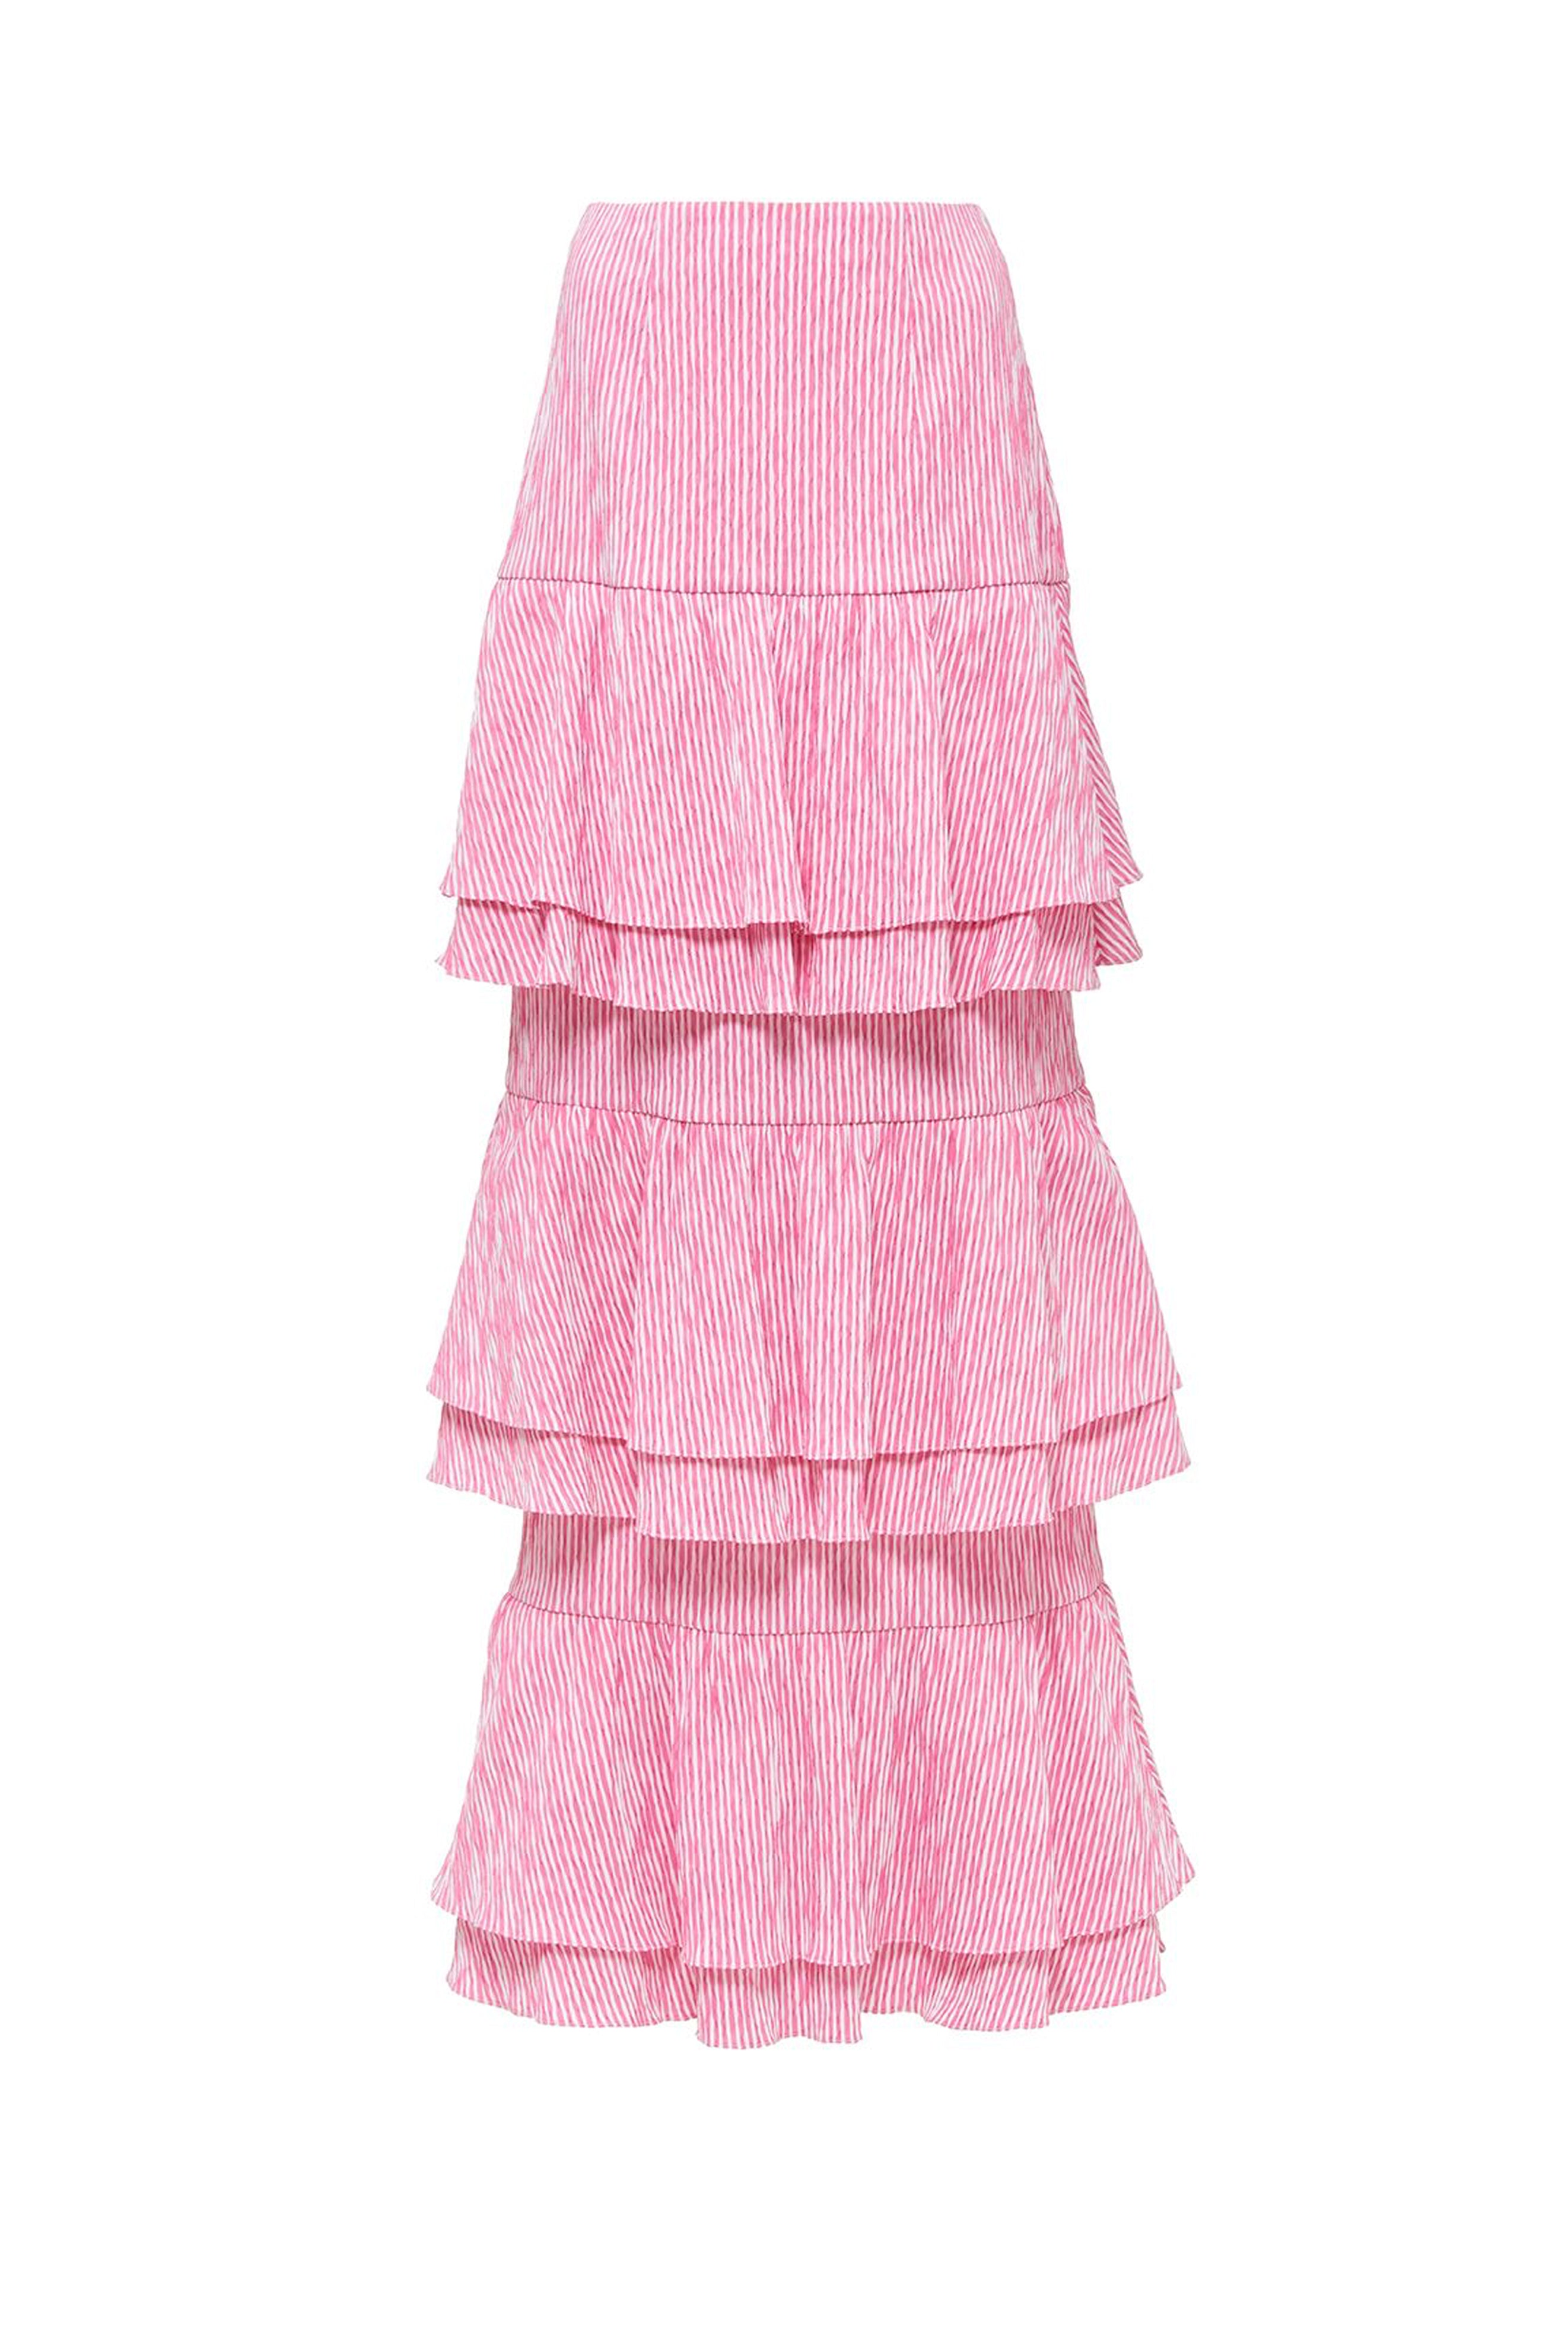 TIERED LONG RUFFLE SKIRT